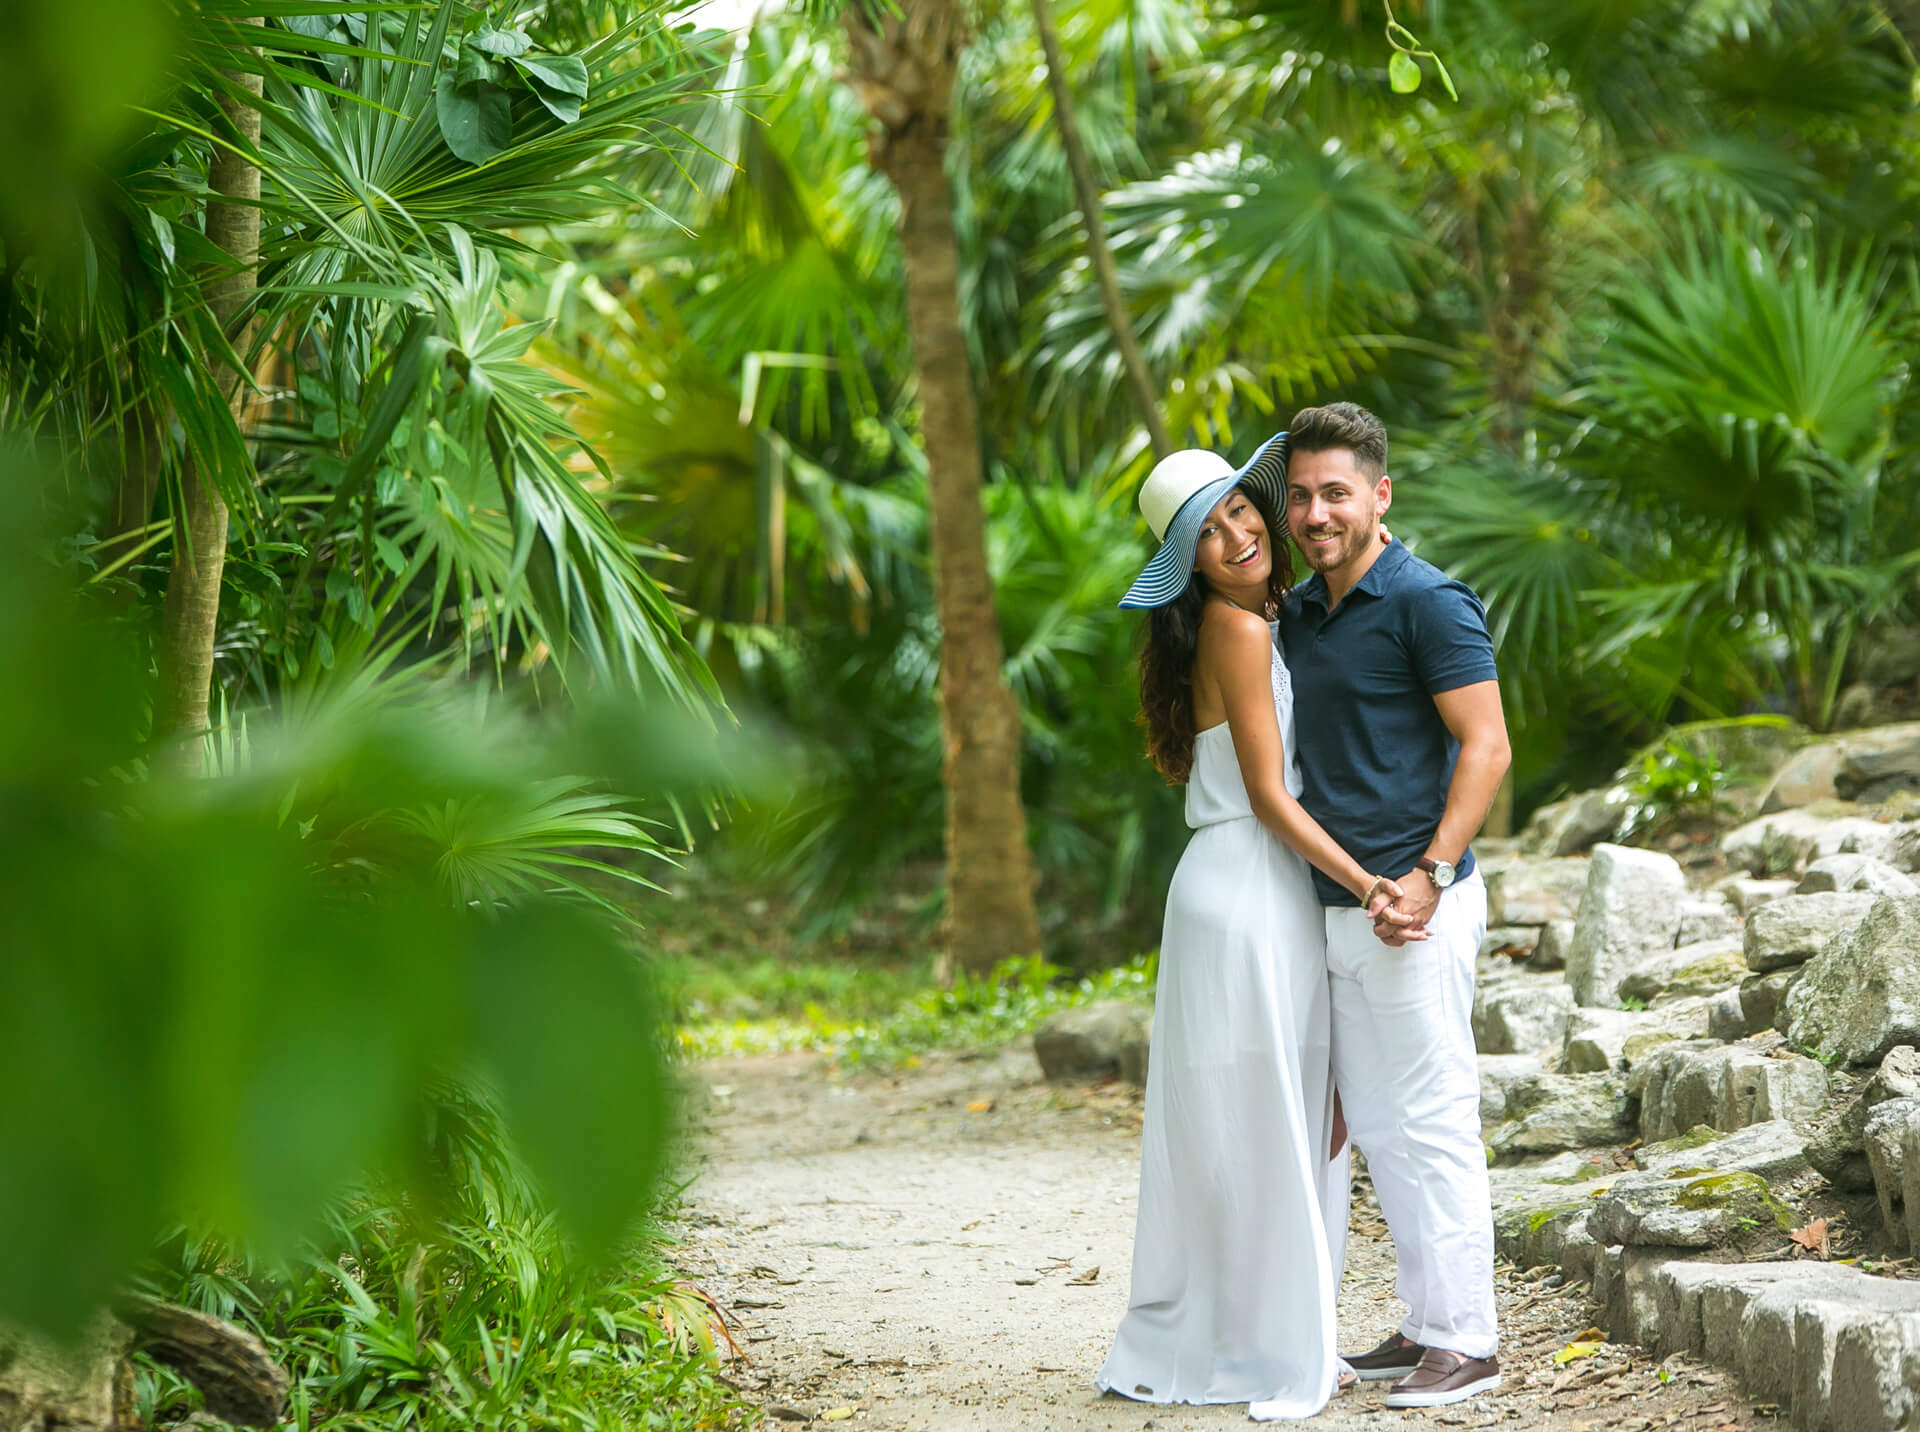 engagement location - Honeymoon Photography